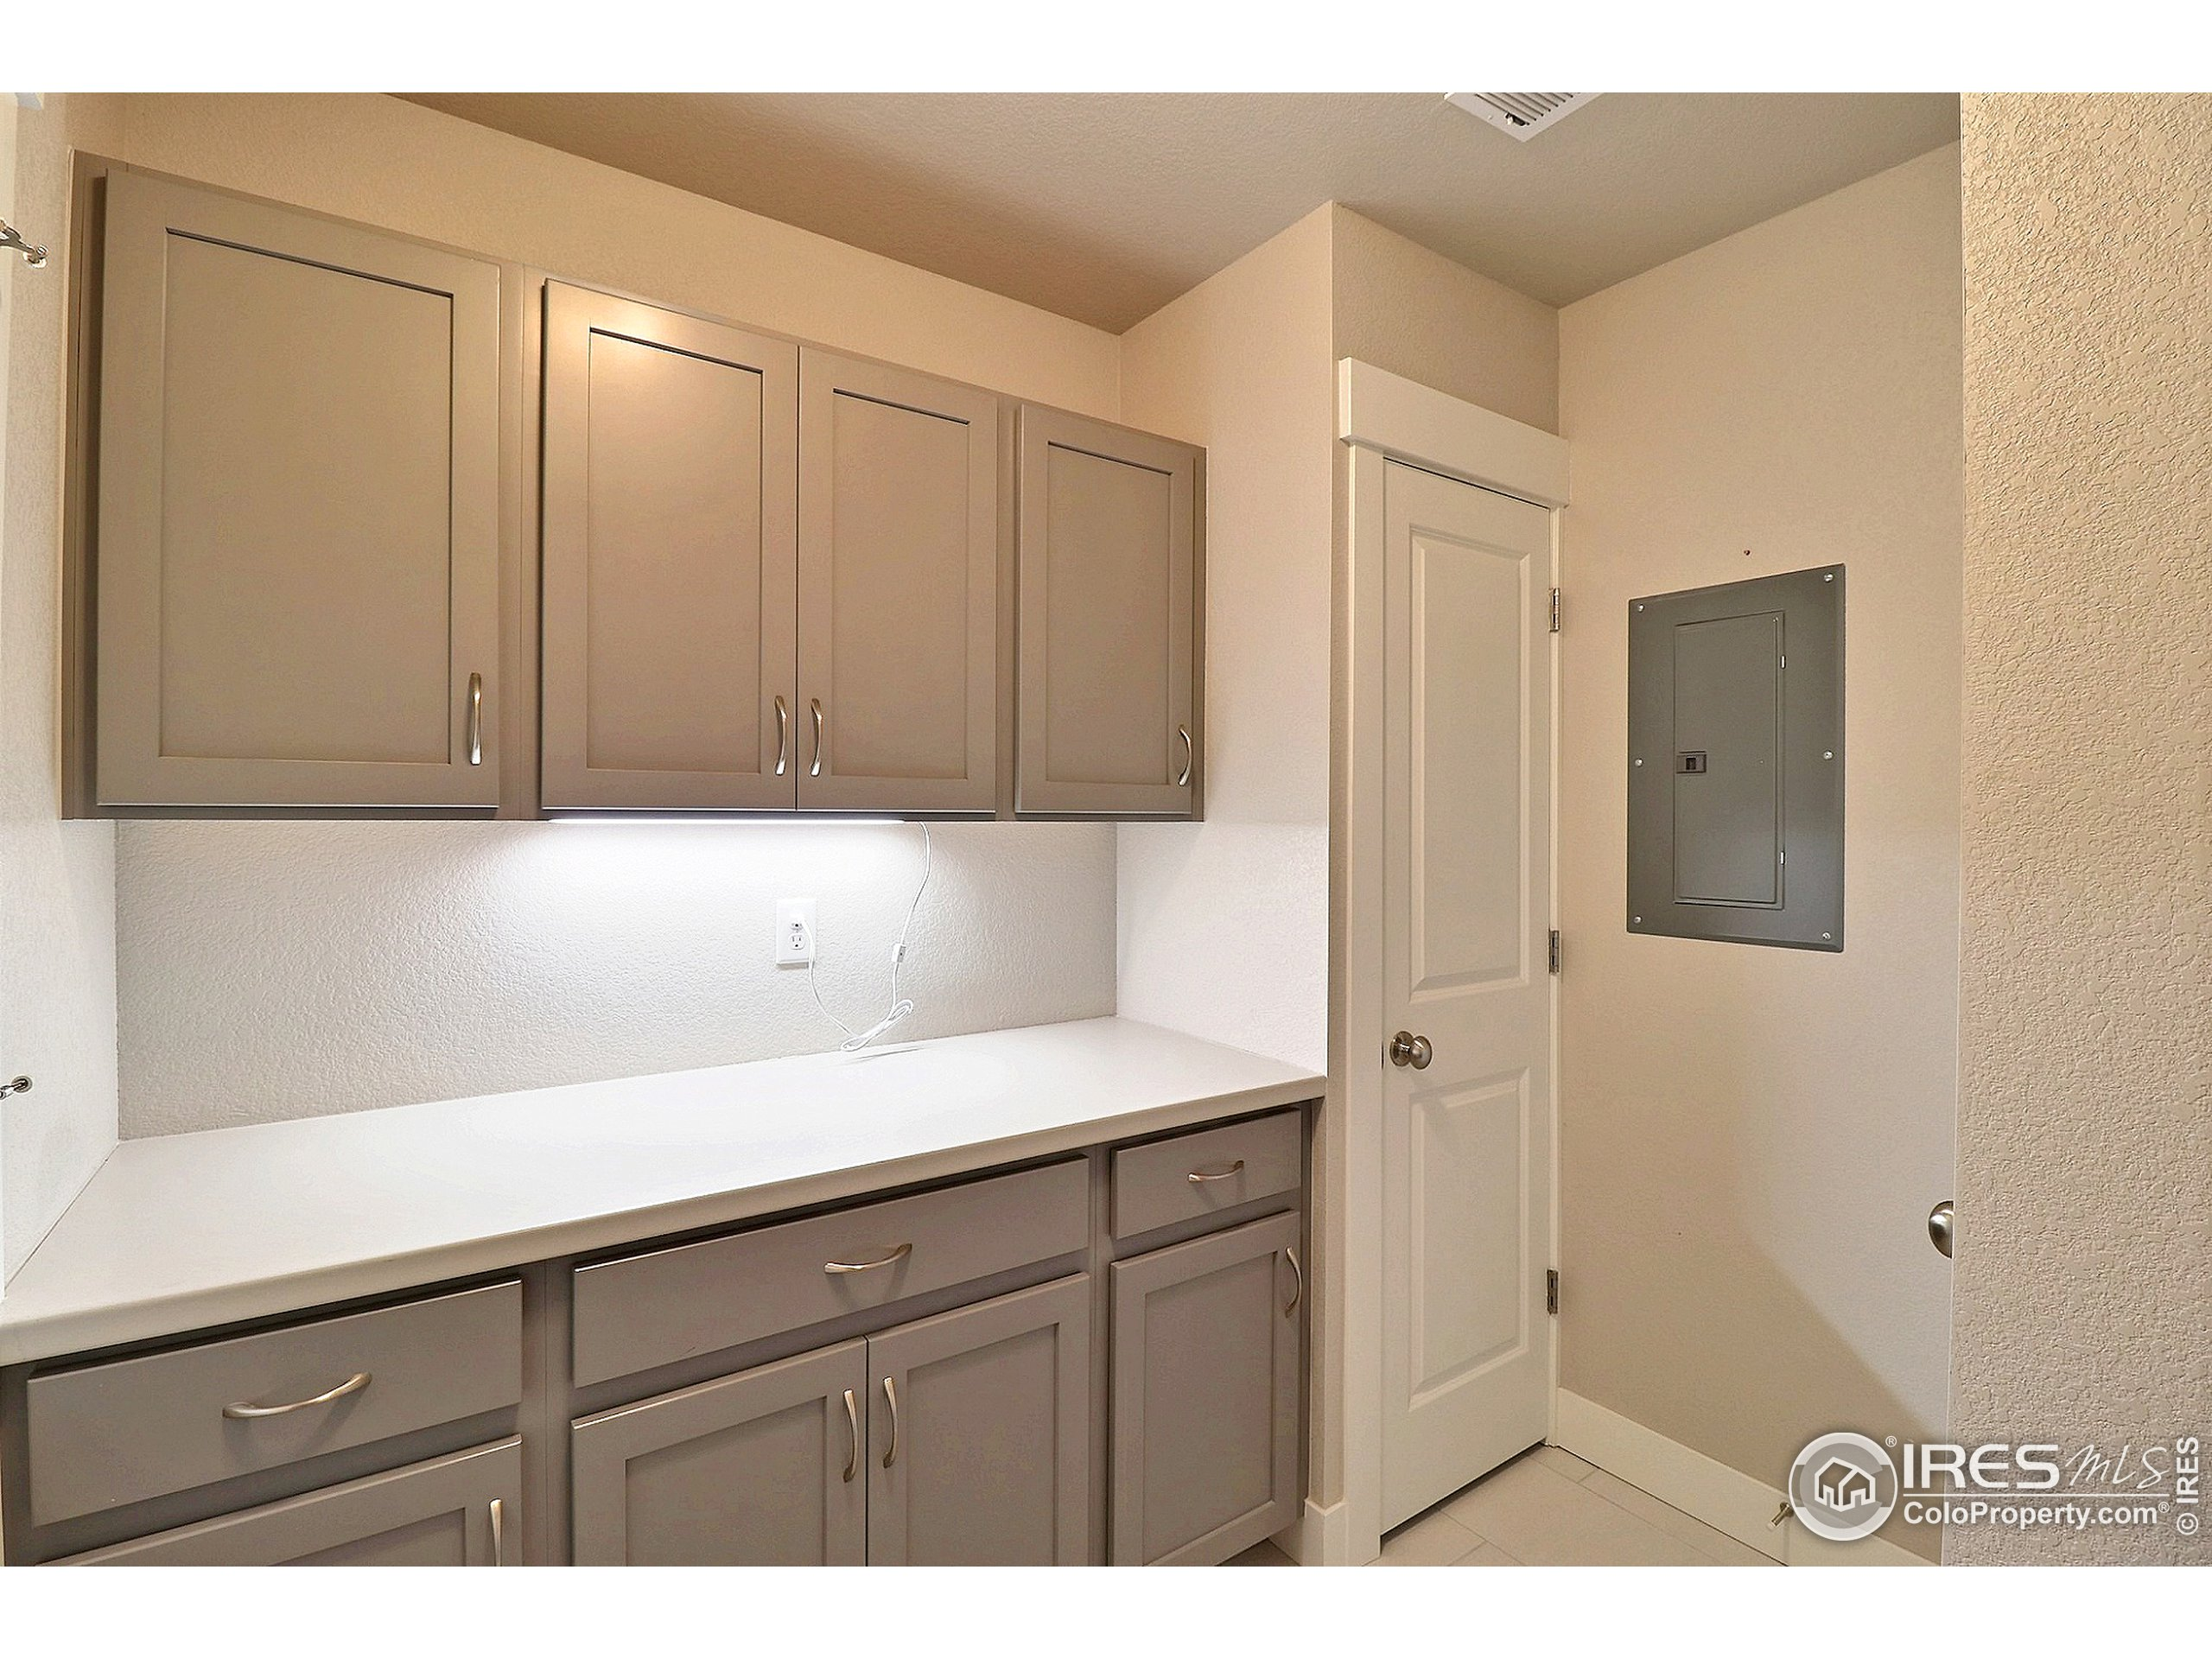 Laundry Room with Built-Ins